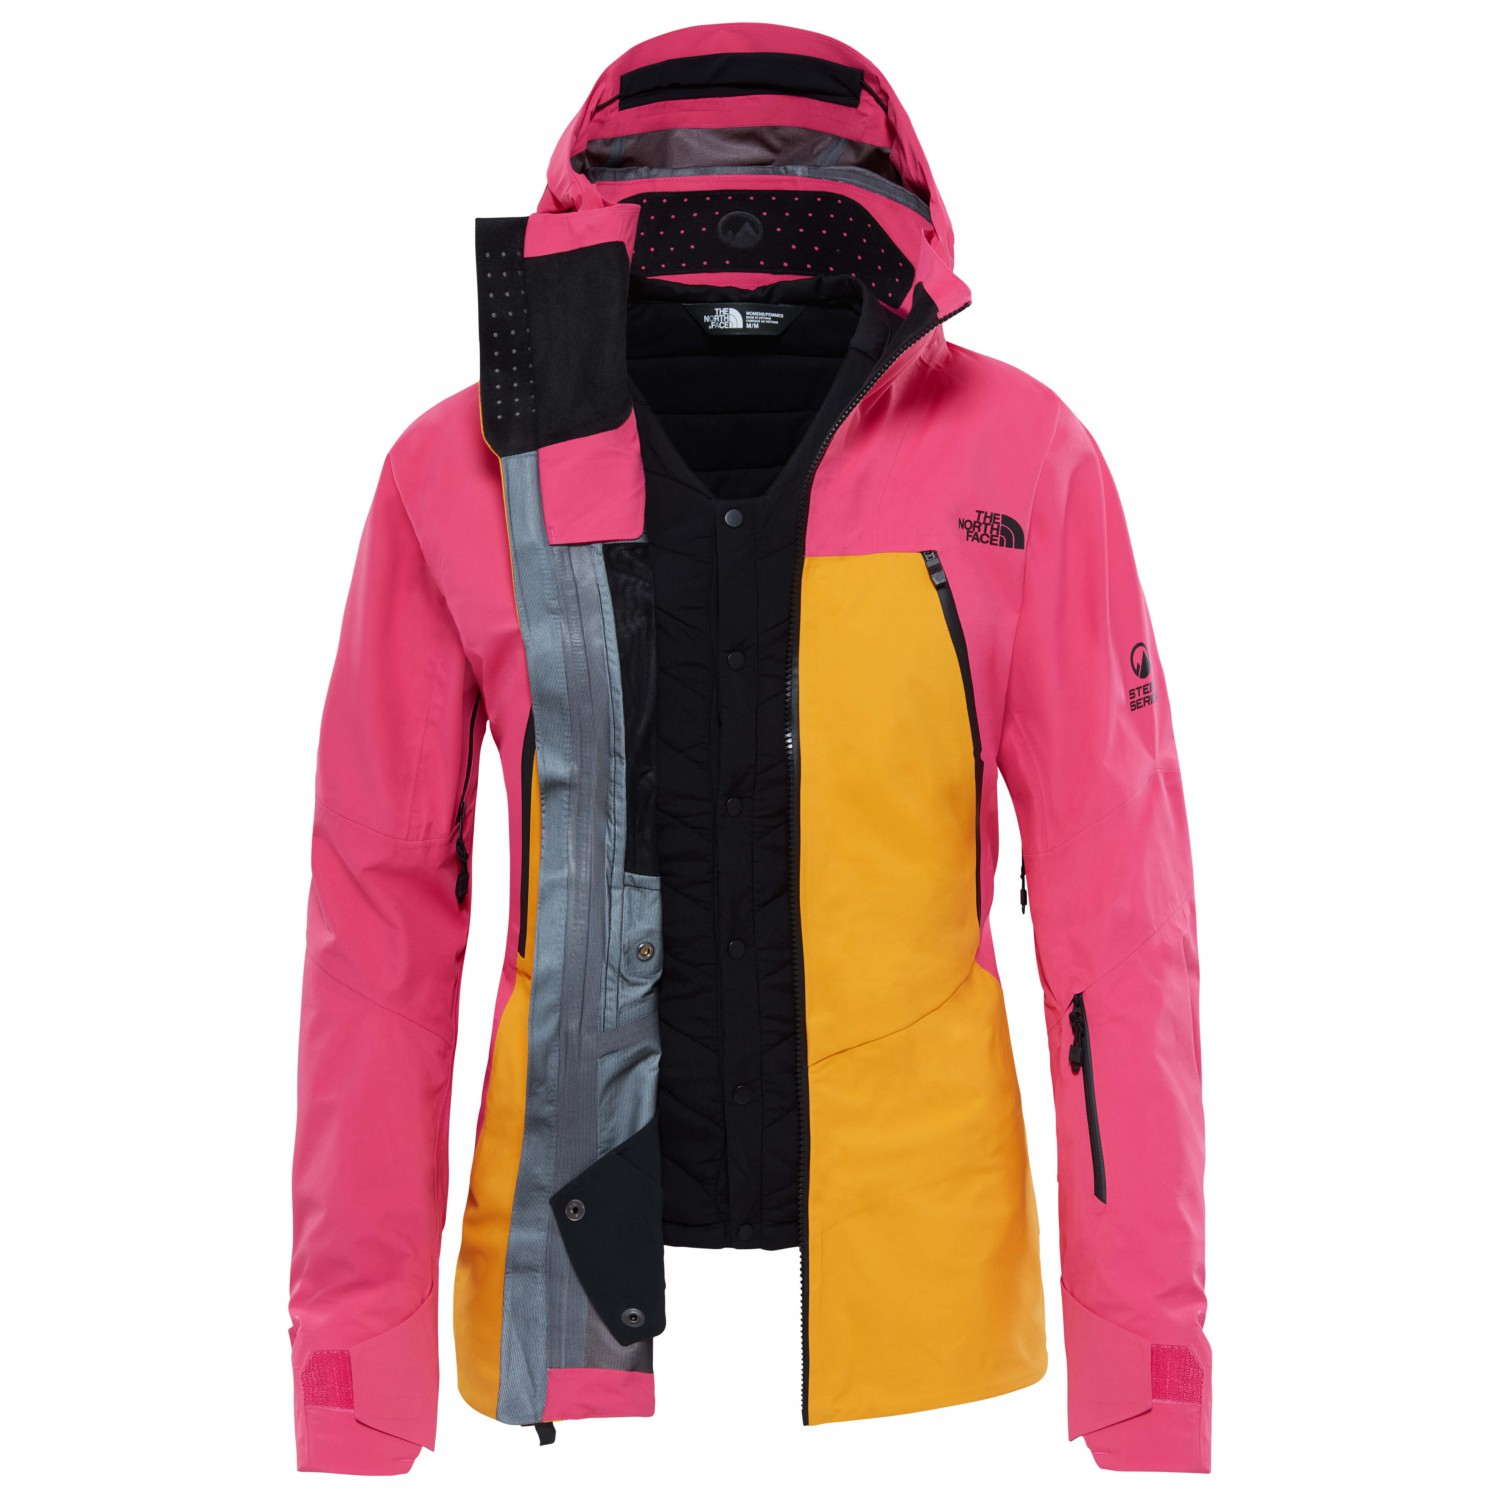 d93cc7928b47 The North Face Purist Triclimate Jacket Women s